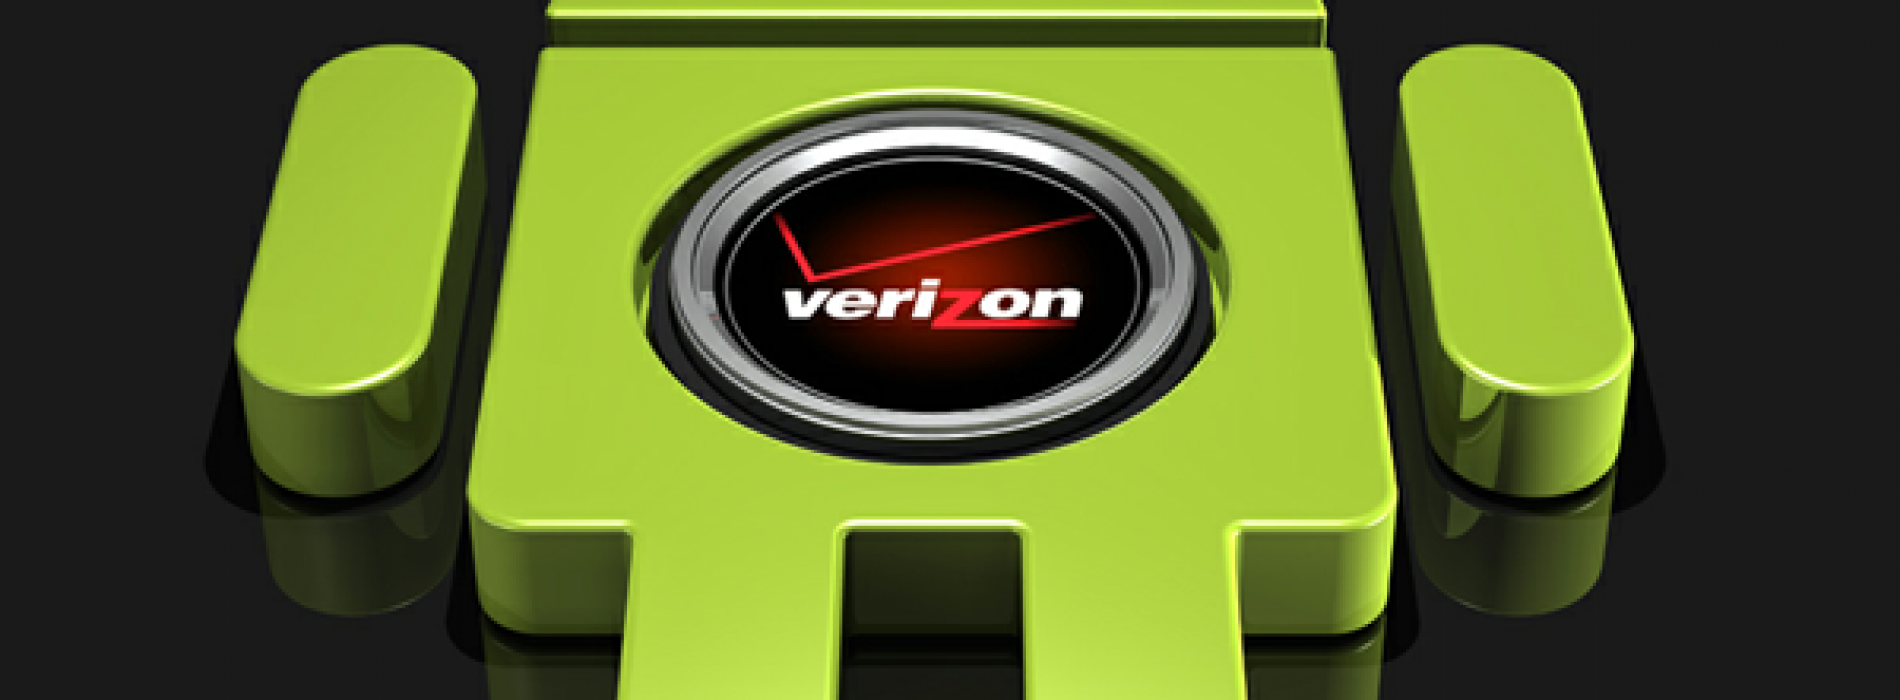 Verizon's shared data plans due in summer, aimed at multi-device users